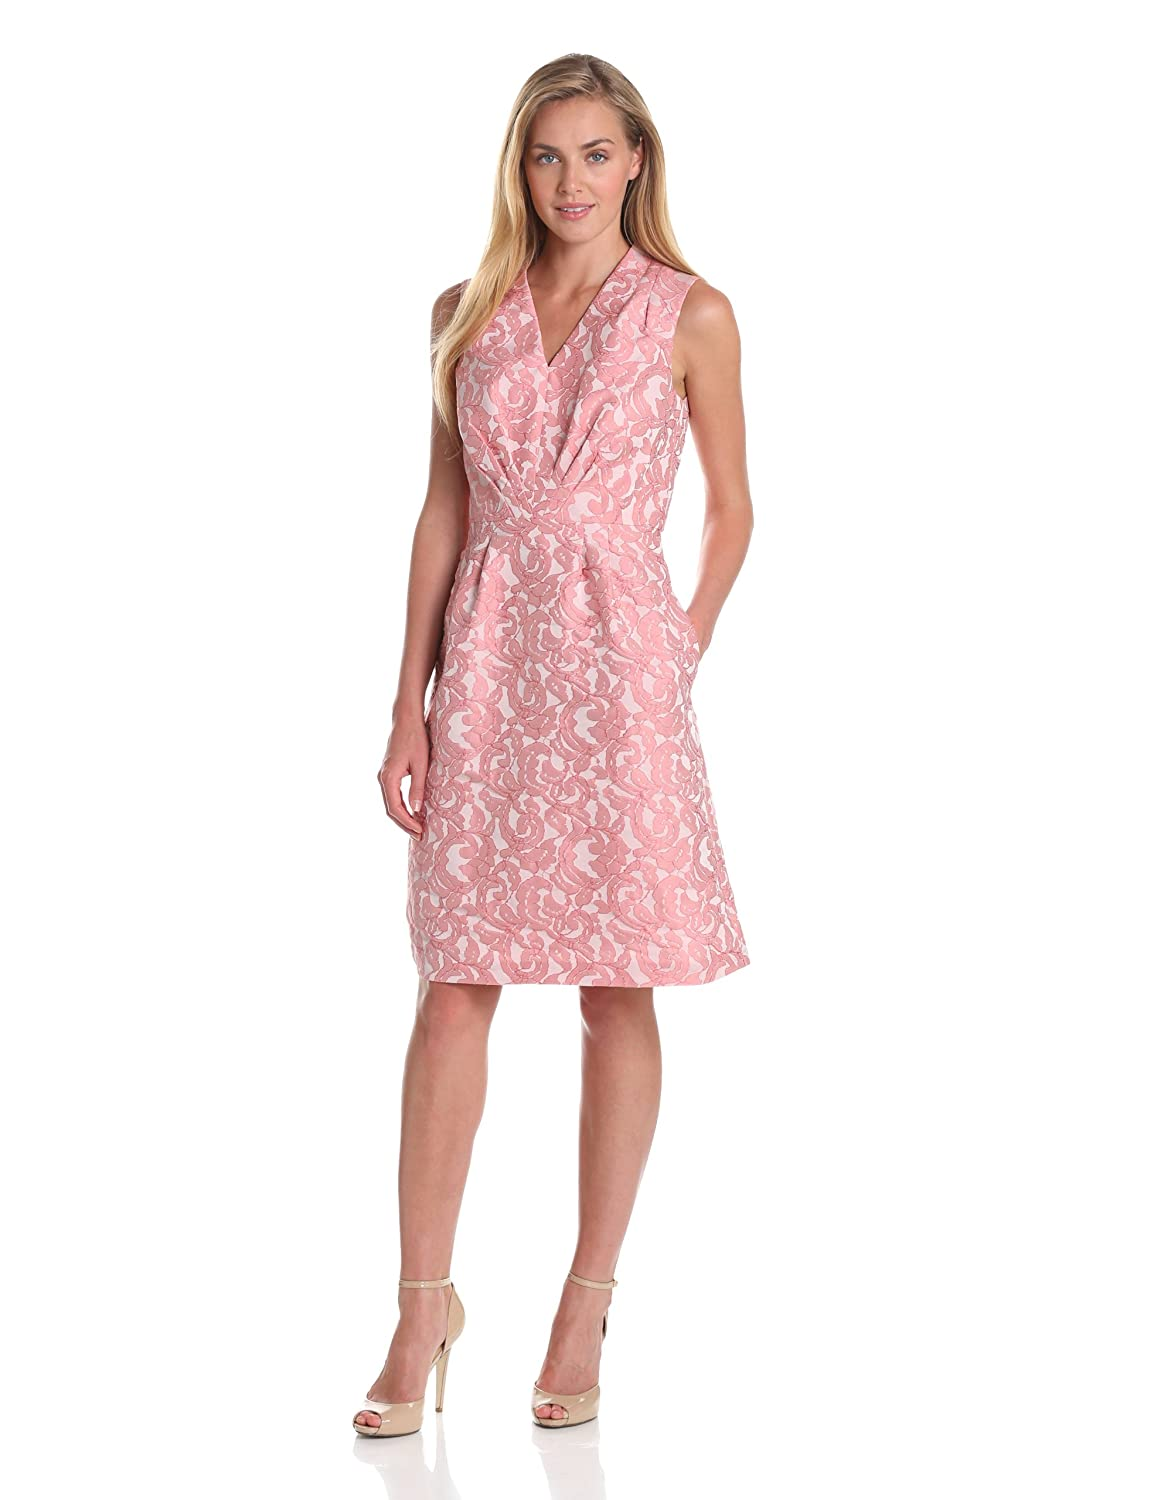 Adrianna Papell Women's Jacquard Fit and Flare Dress